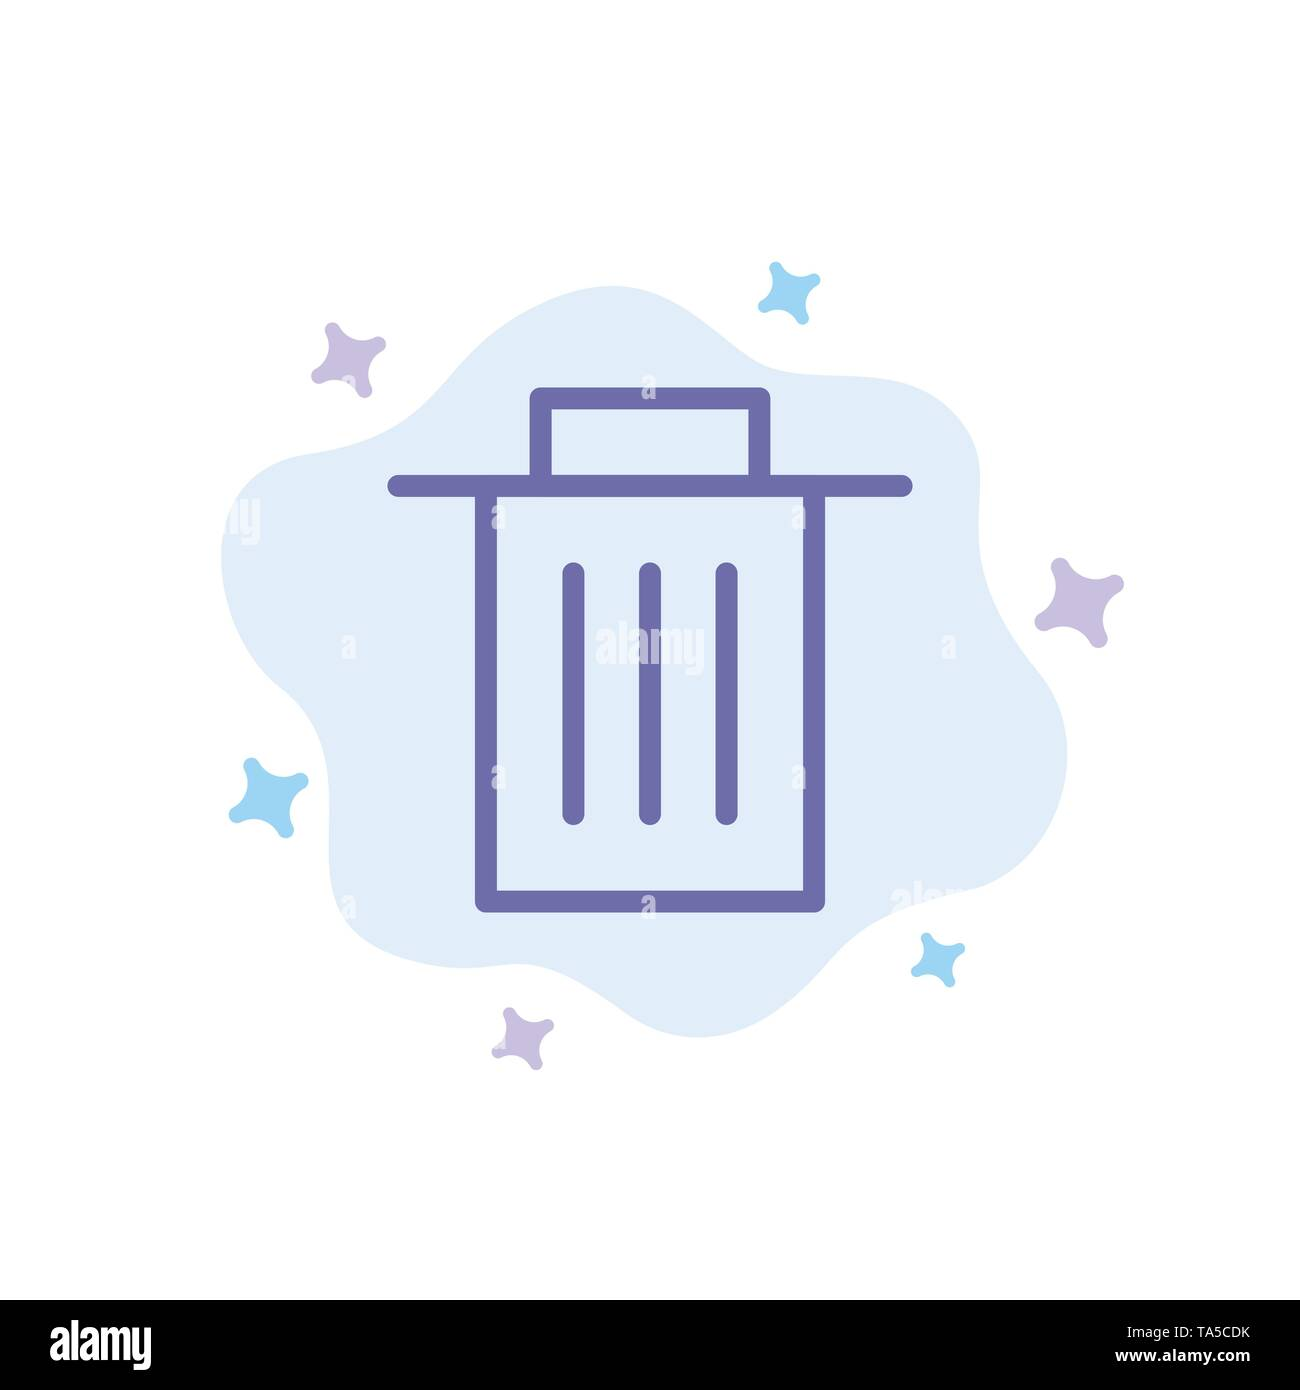 Delete, Interface, Trash, User Blue Icon on Abstract Cloud Background - Stock Image